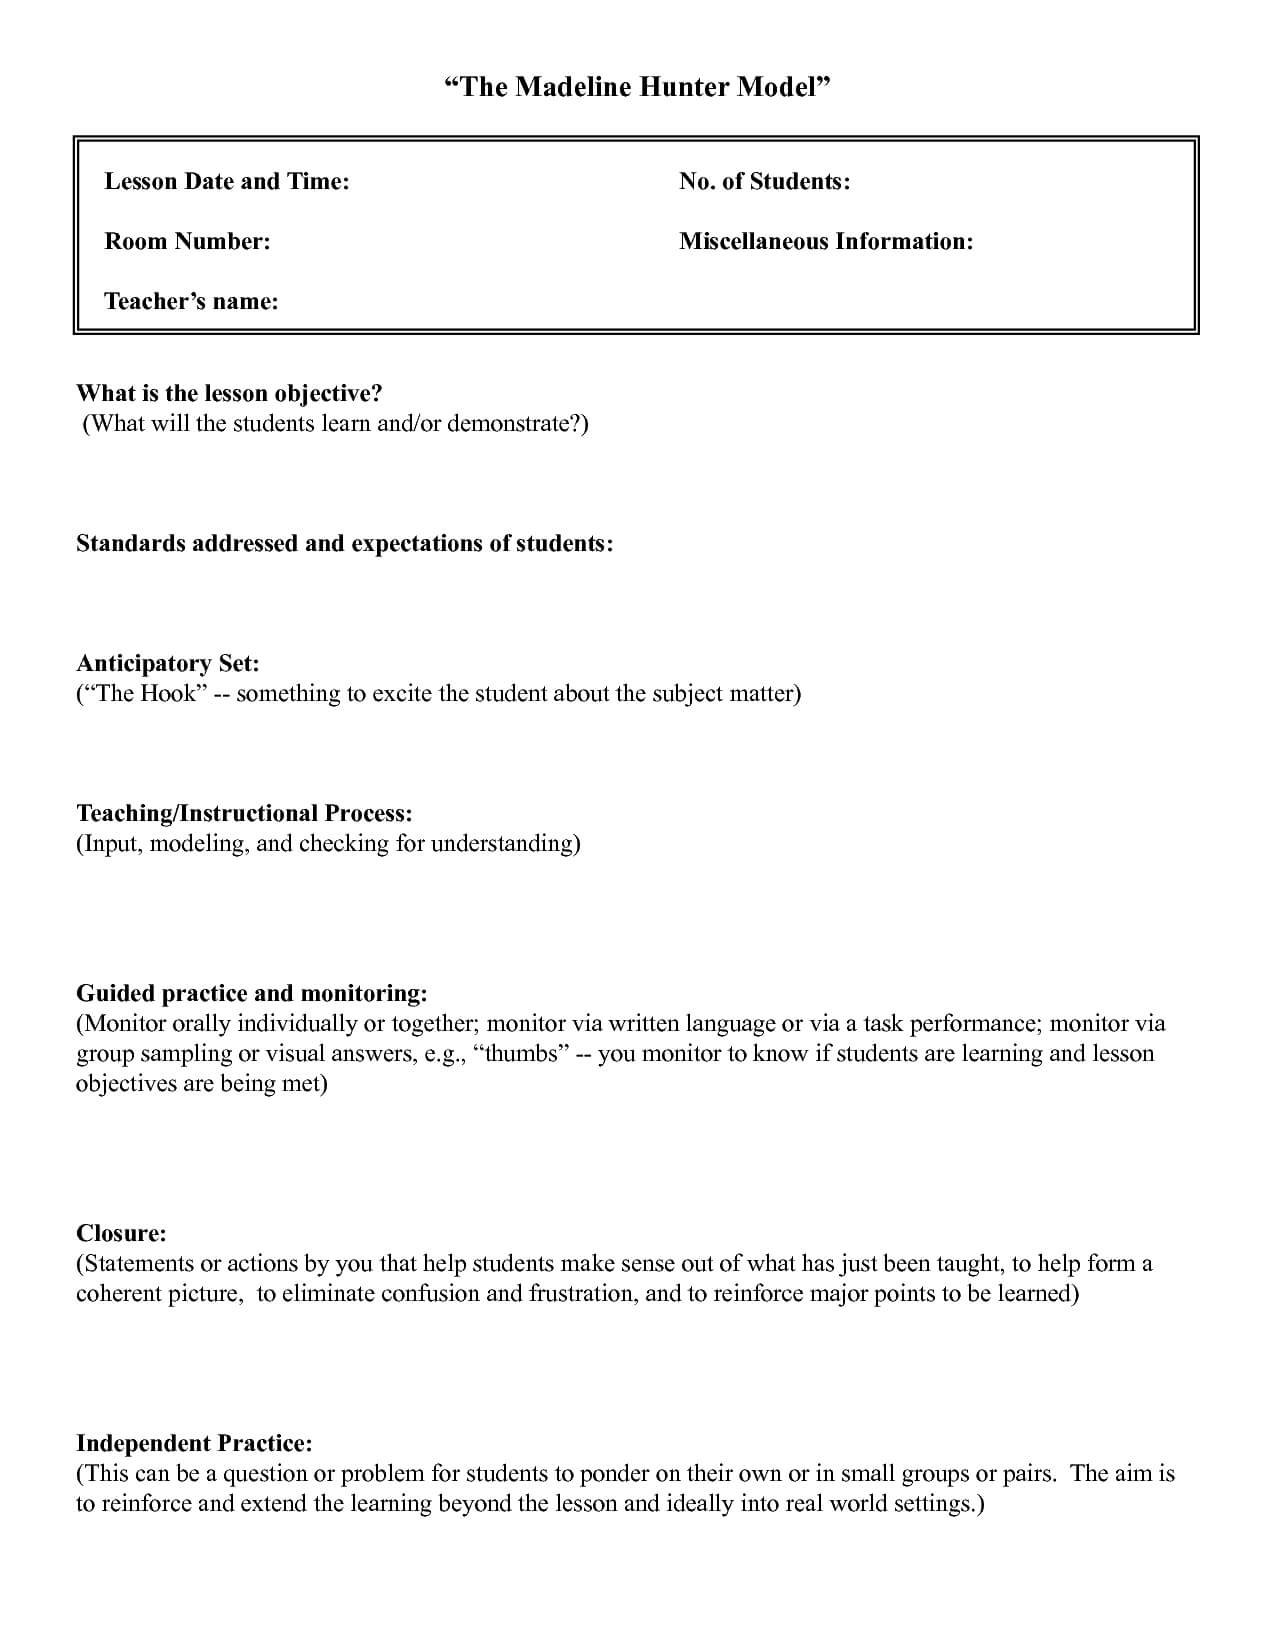 Five Common Mistakes In Writing Lesson.   Lesson Plan within Madeline Hunter Lesson Plan Template Blank